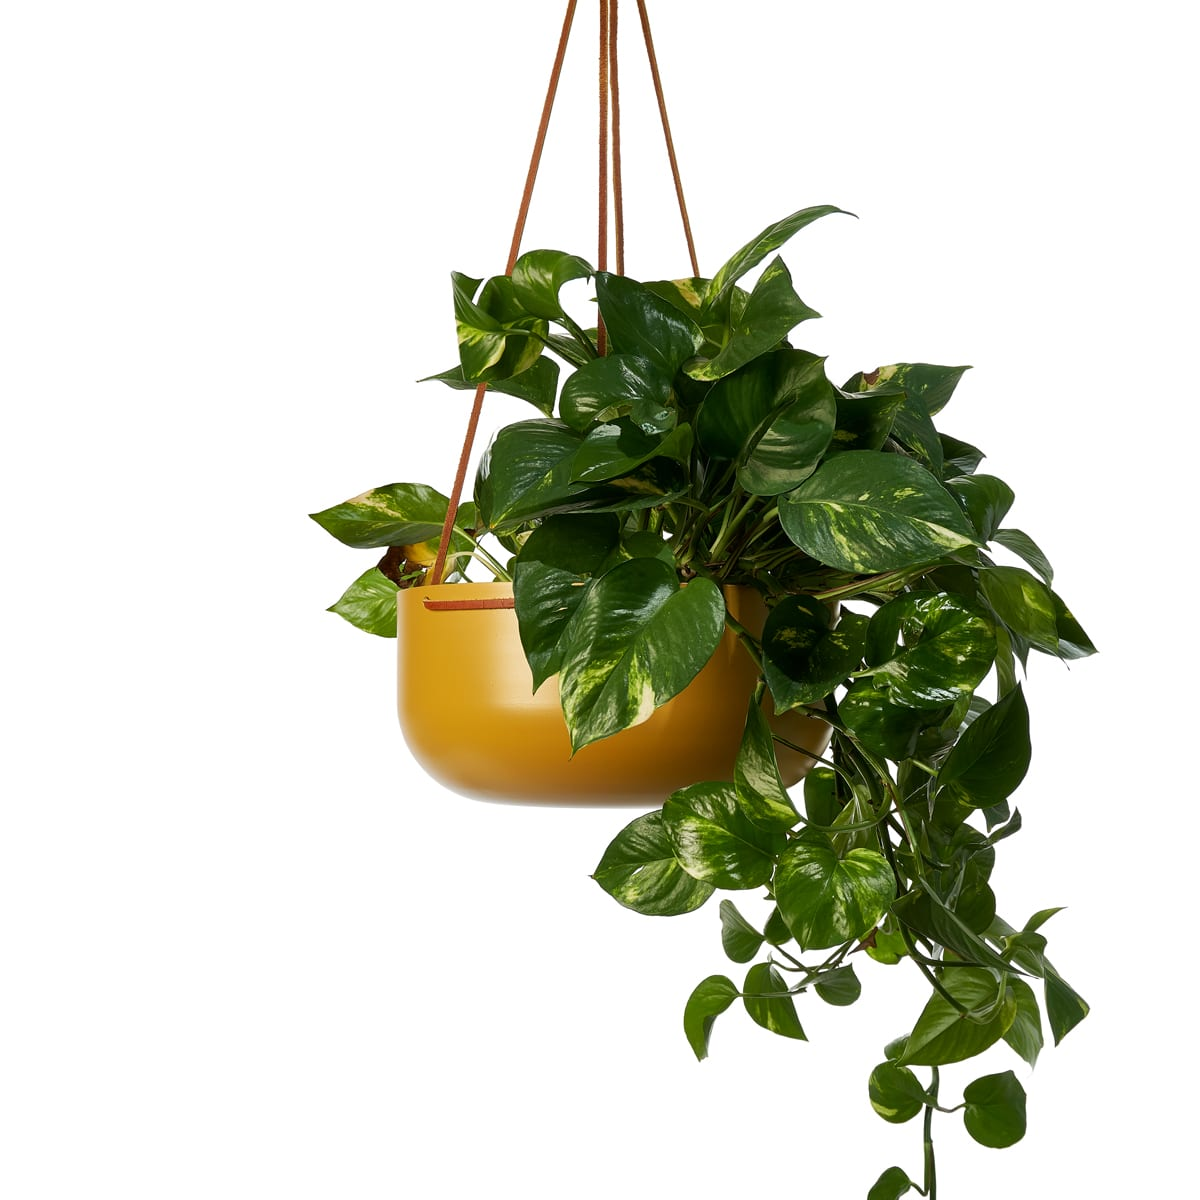 Hanging Planters Australia Hanging Planter Large In Turmeric With Leather Straps By